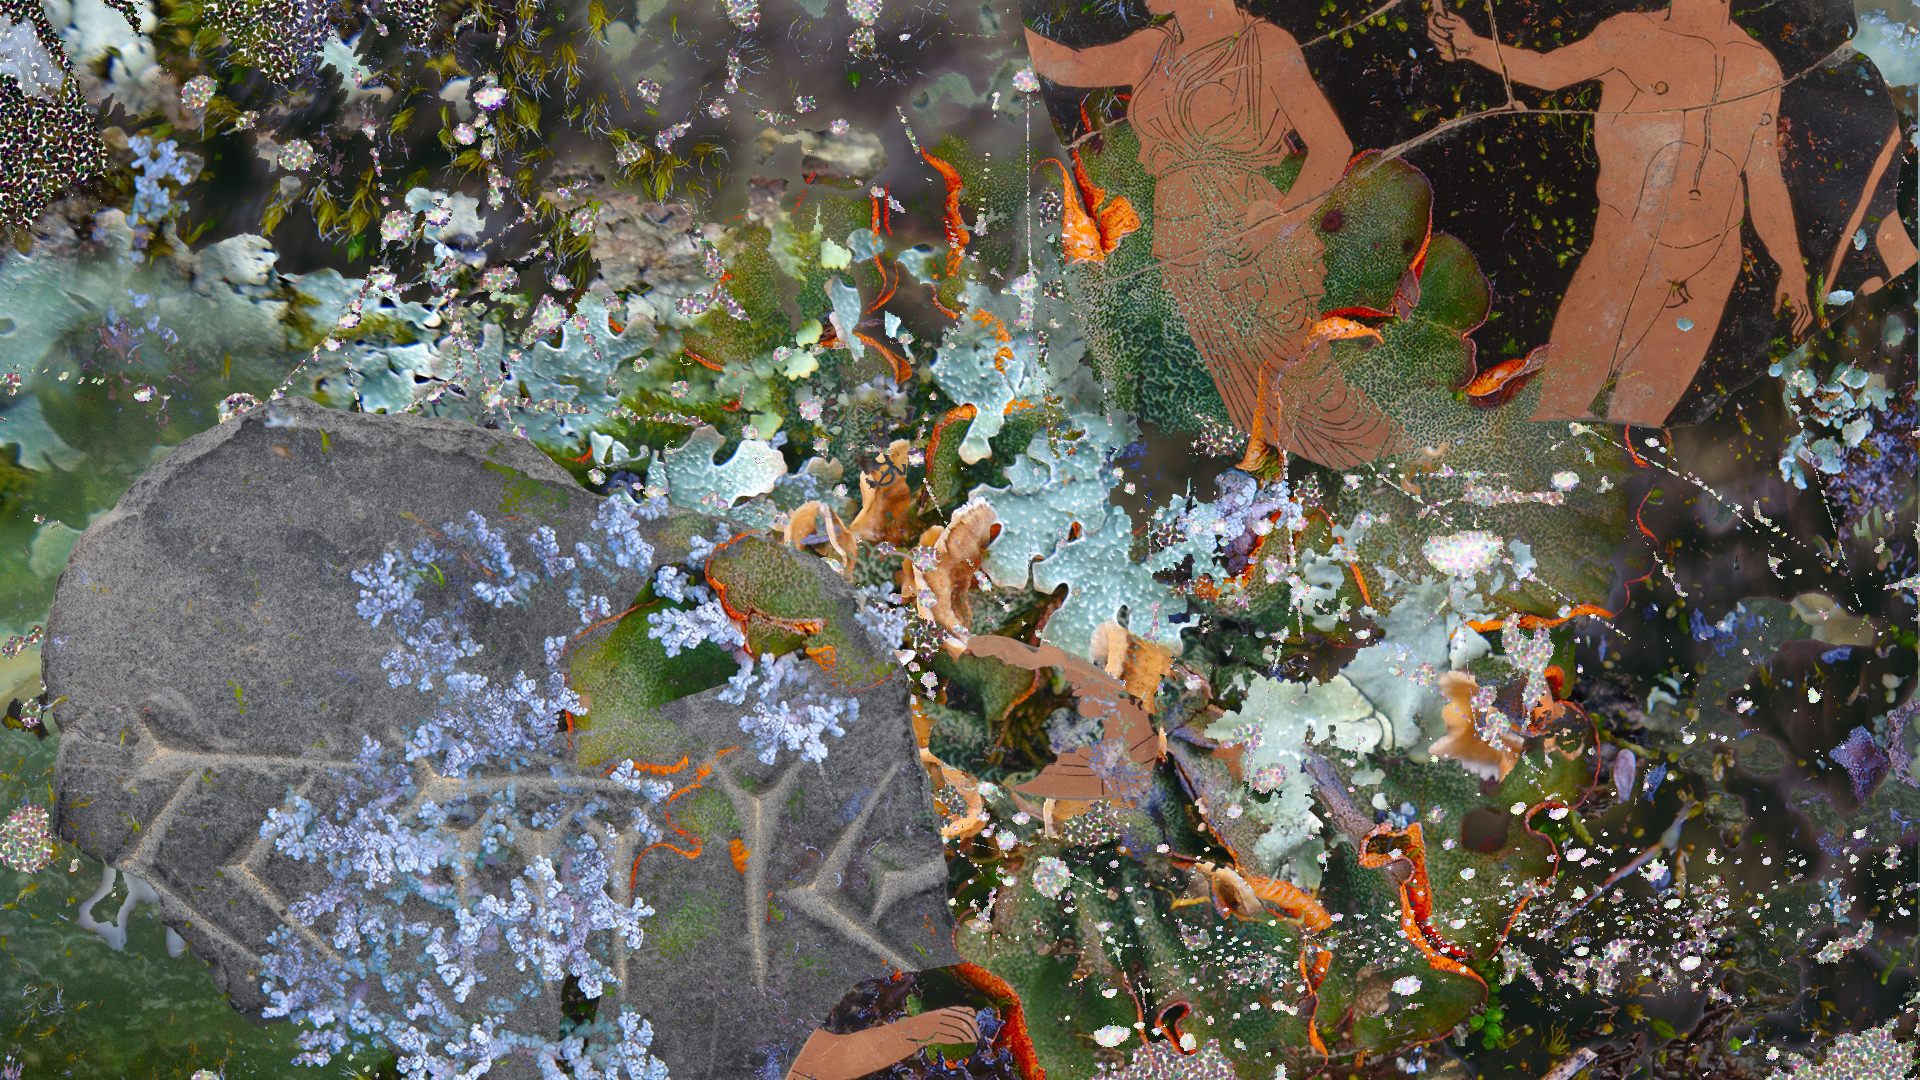 A collage with fragments of pottery and stone carvings, a spiderweb covered in dewdrops and colourful lichens